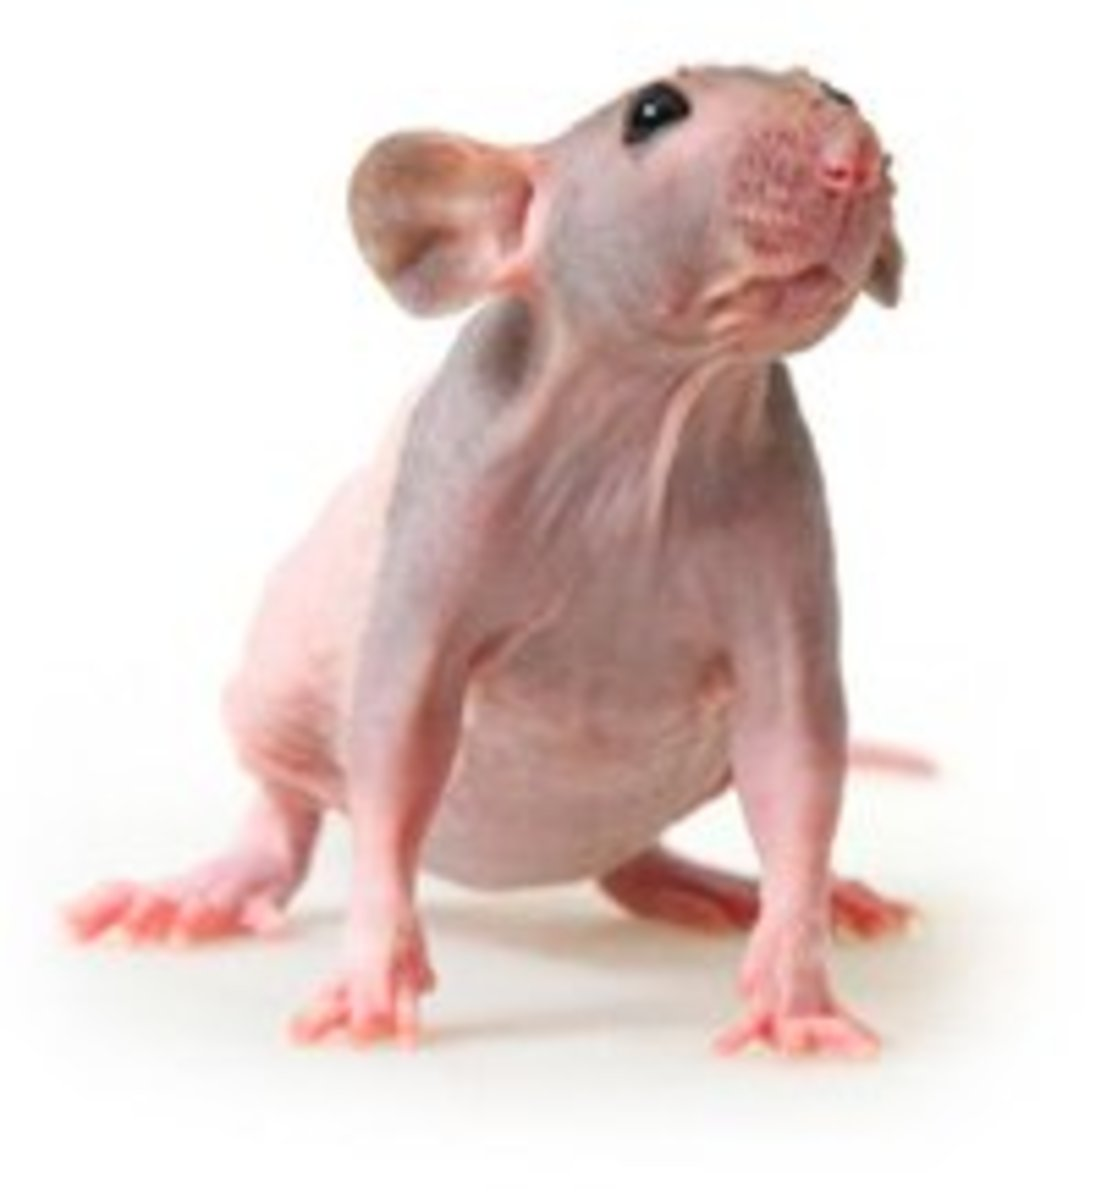 Hairless rats are awesome pets guys!